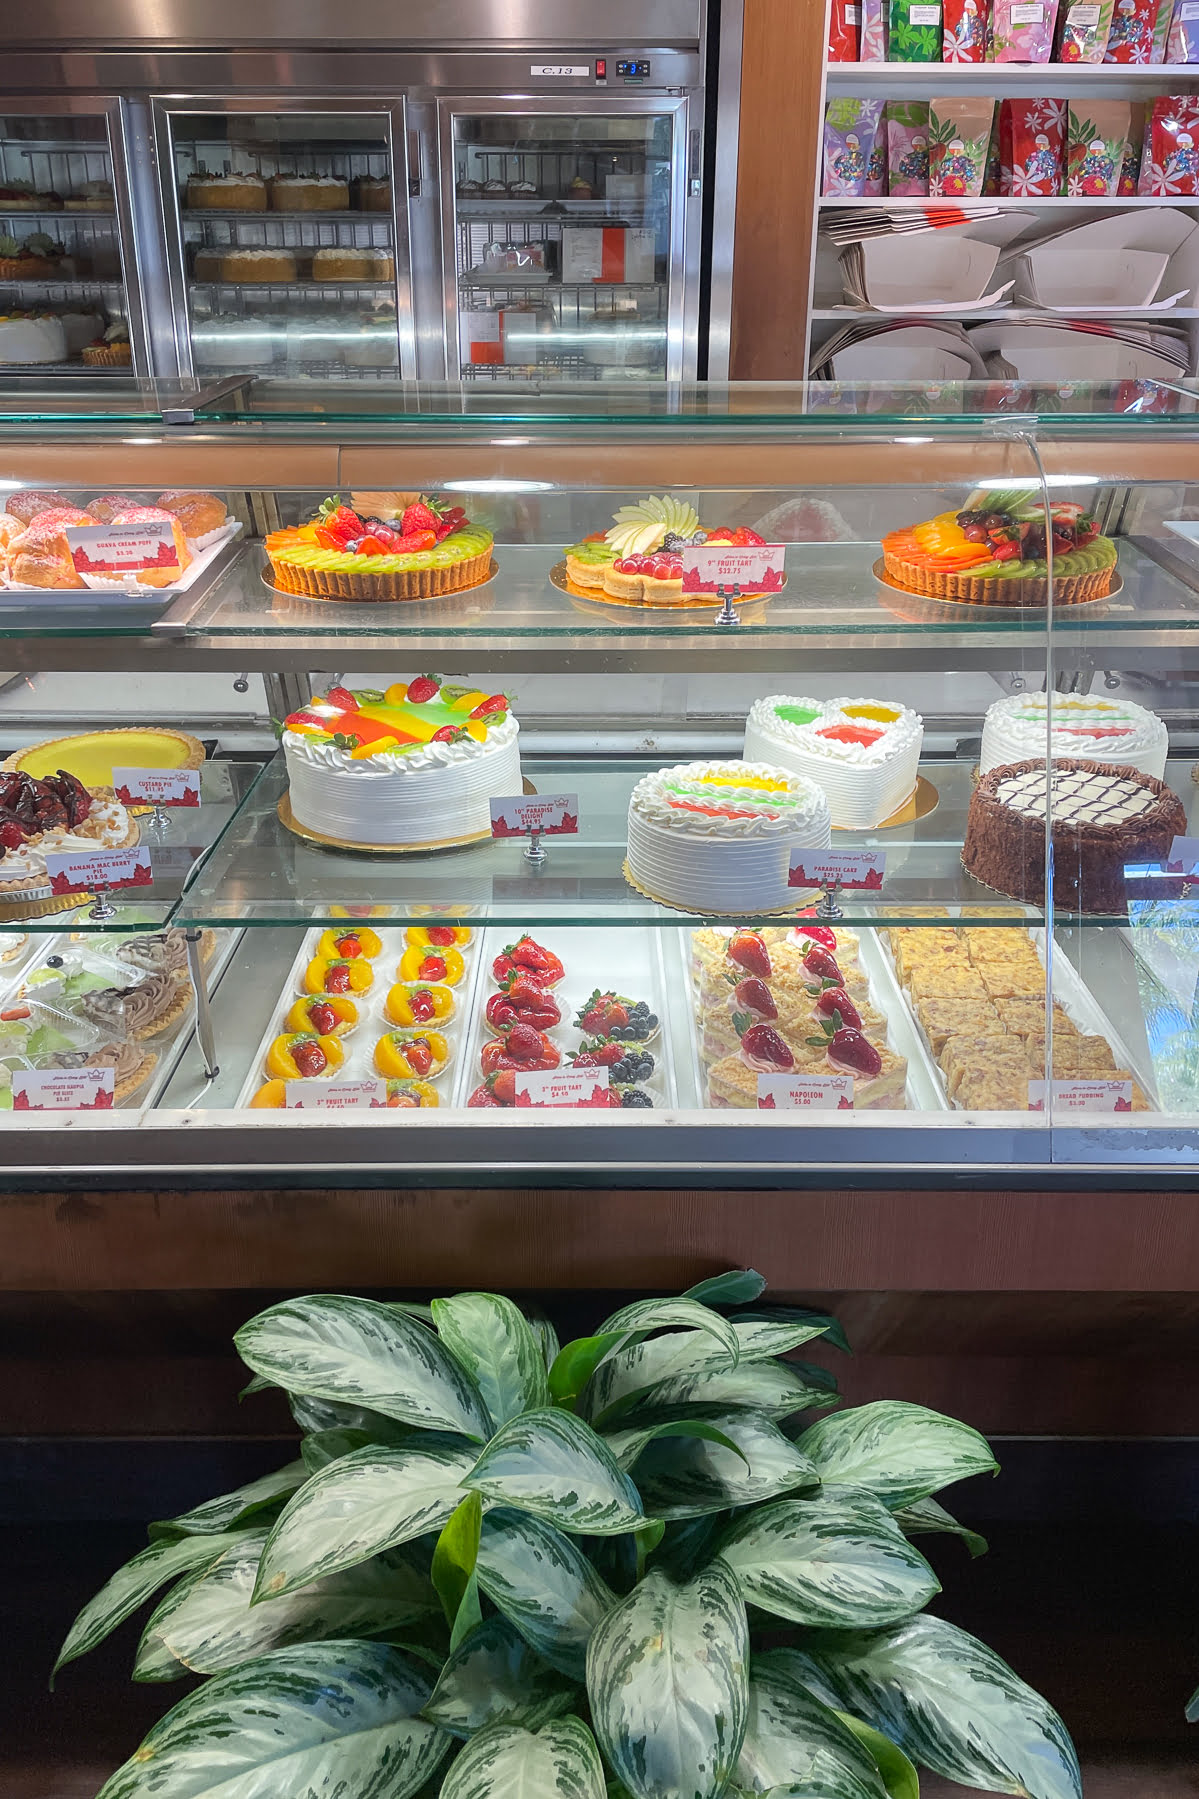 Bakery Counter at King's Hawaiian Bakery and Restaurant